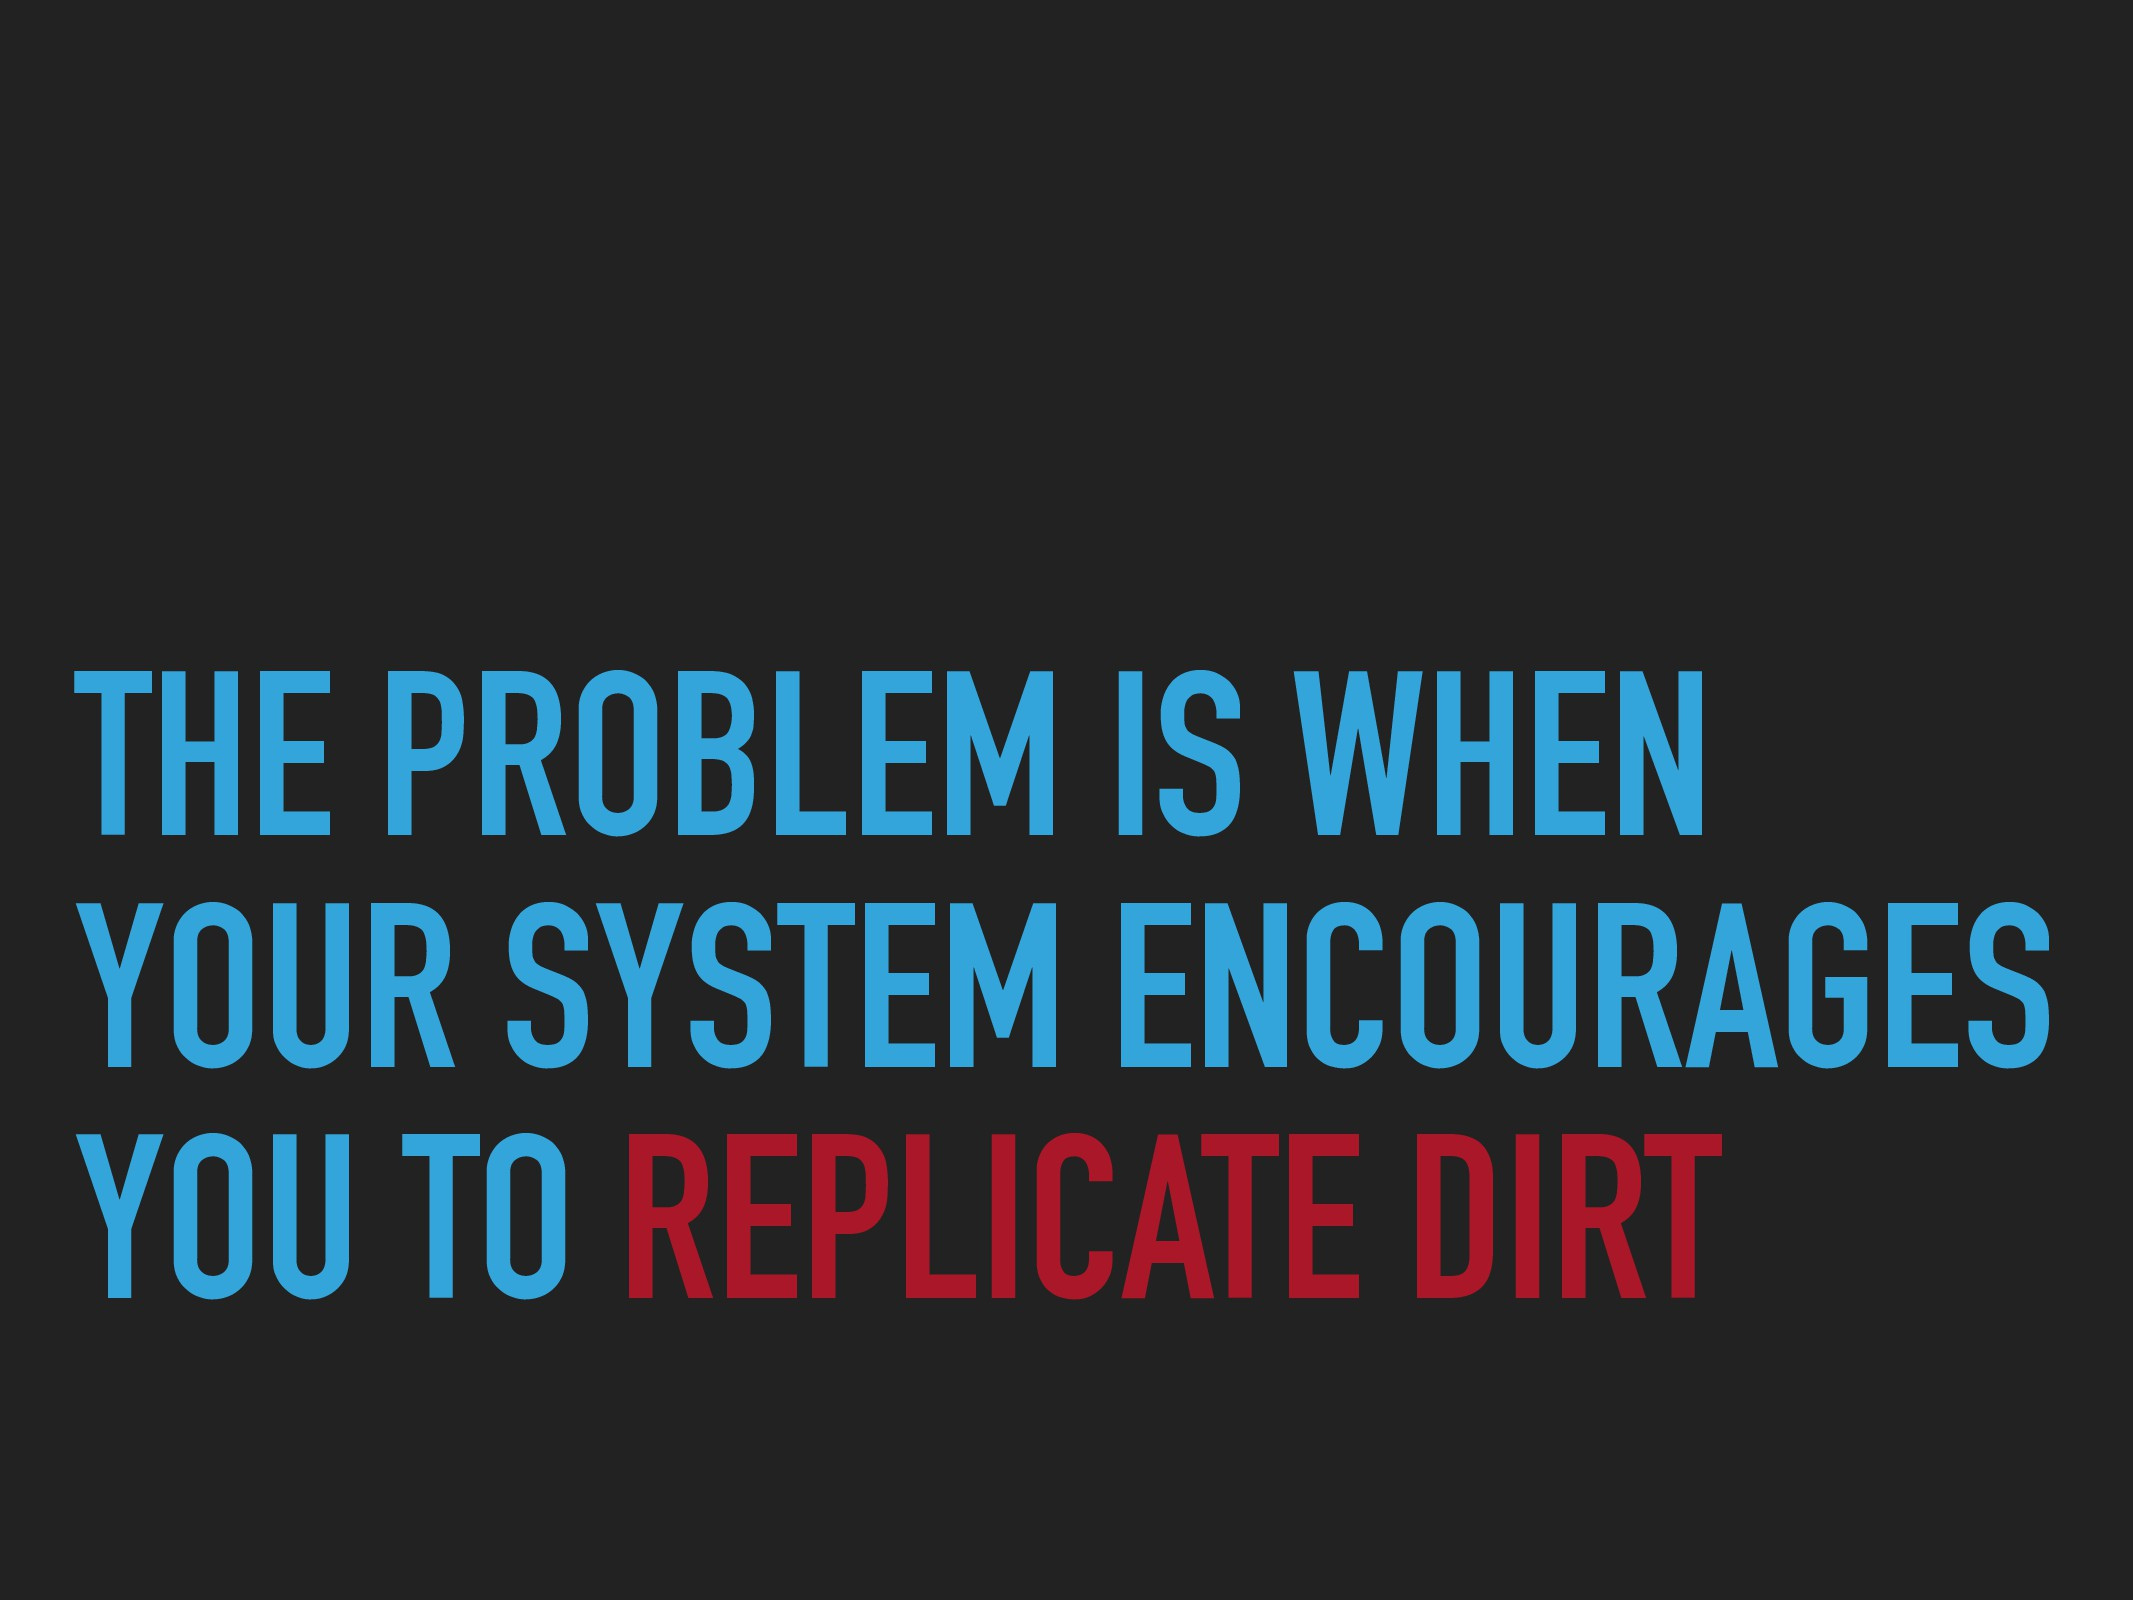 THE PROBLEM IS WHEN YOUR SYSTEM ENCOURAGES YOU ...